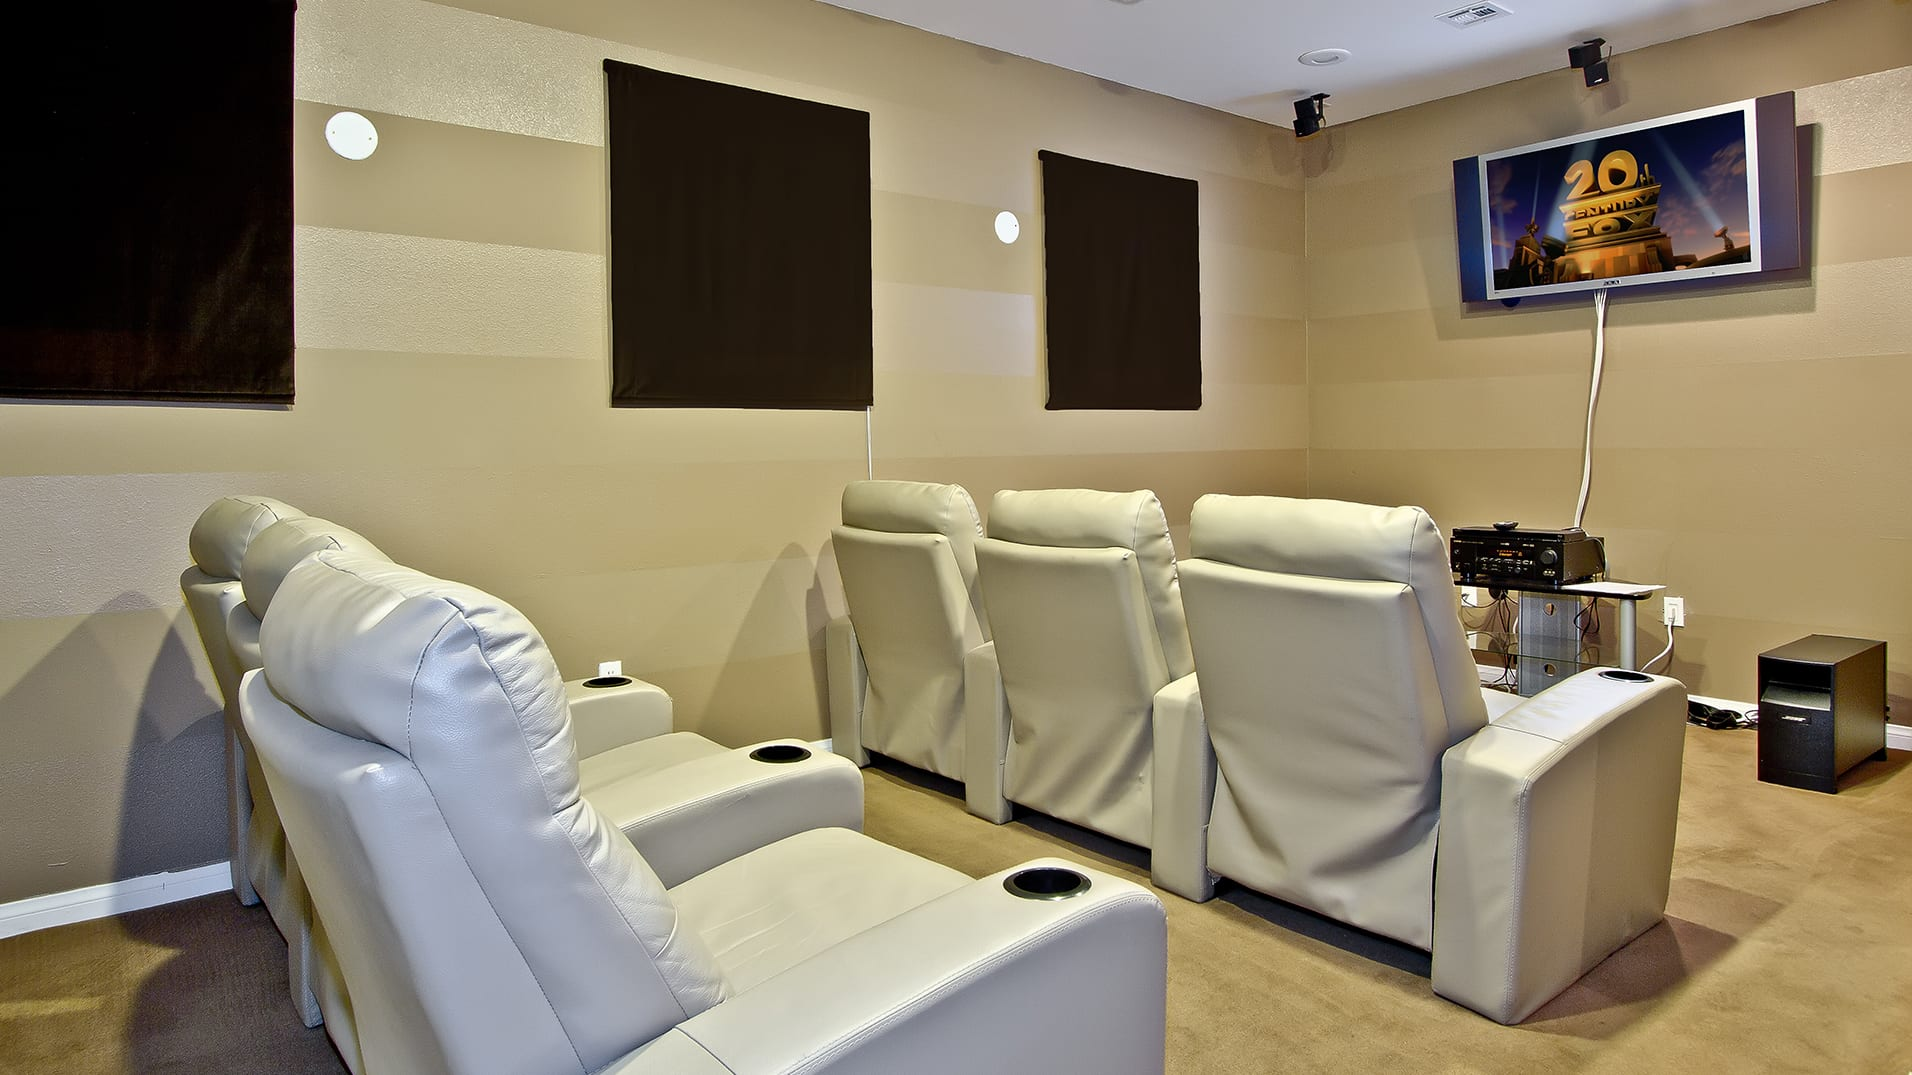 Community movie theater room with comfortable lounging arm chairs and flat-screen TV.